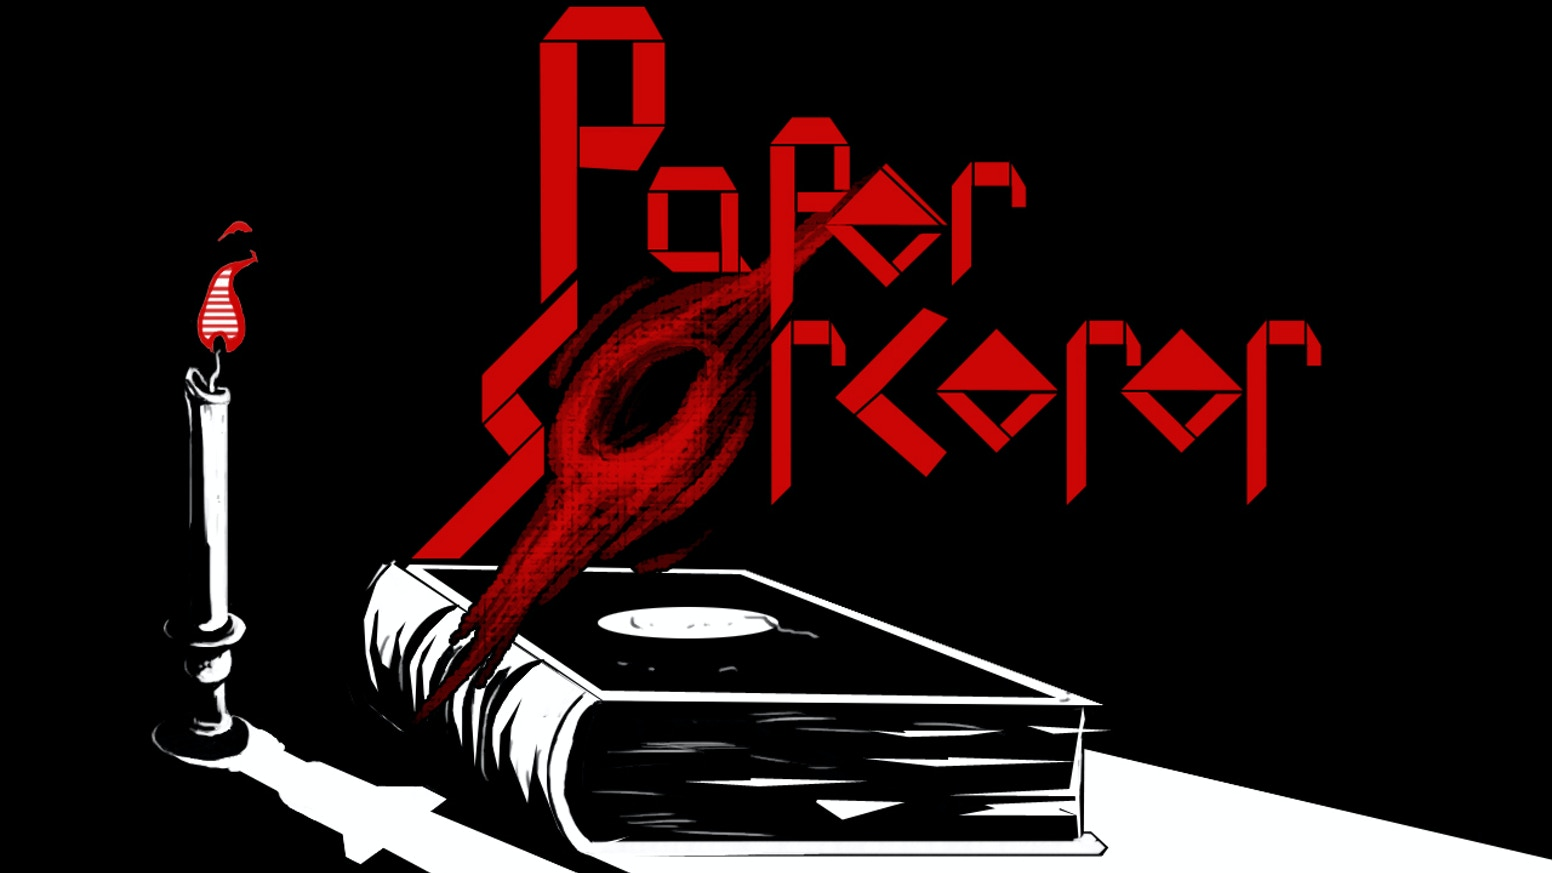 Paper Sorcerer is a stylish first-person turn-based RPG with adventure game elements.